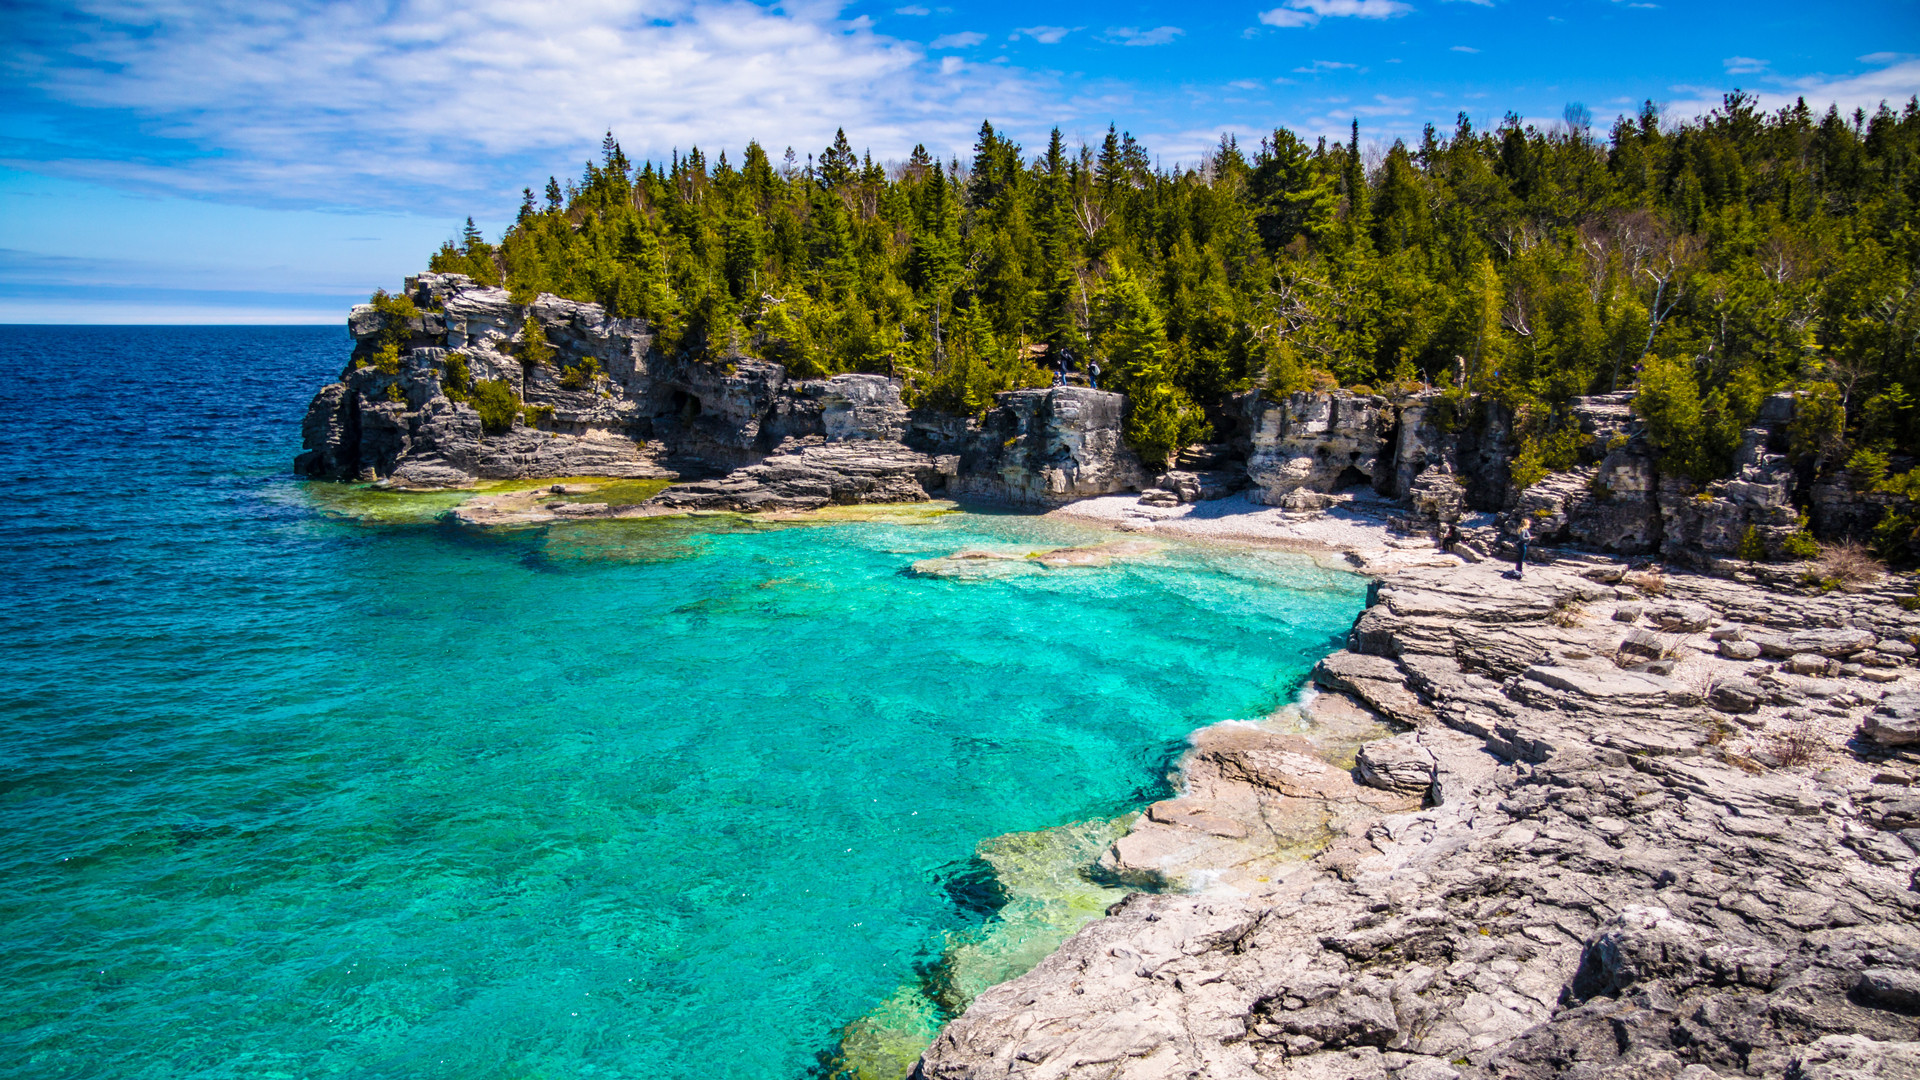 Breathtaking Ontario beaches | Indian Head Cove is home to turquoise blue waters